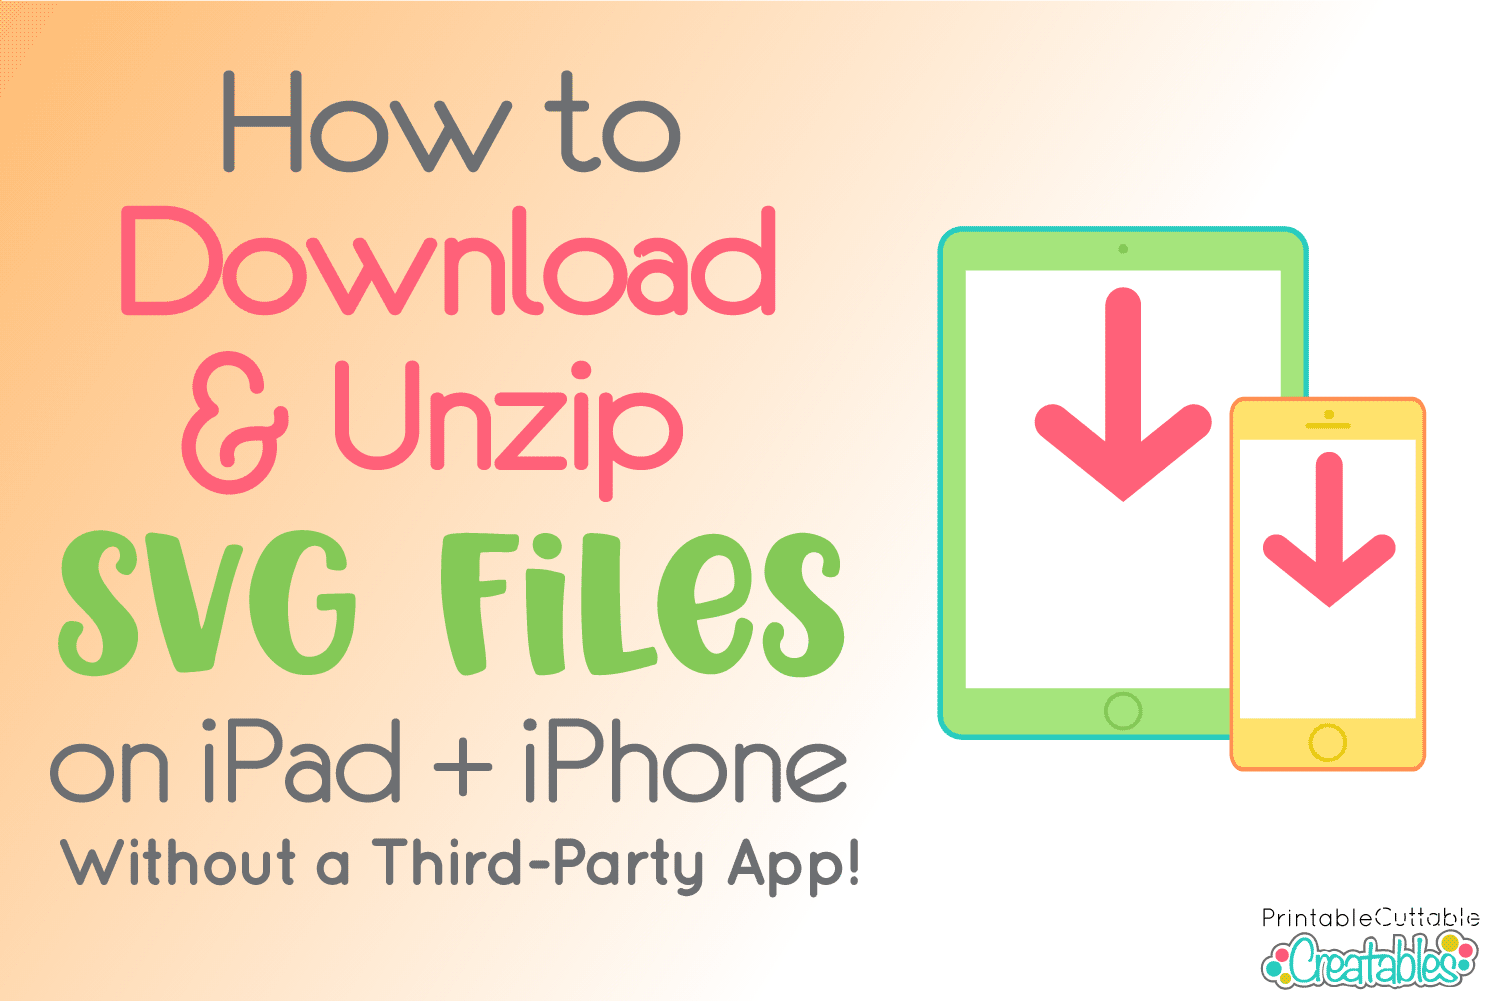 How to Download & Unzip SVG Files on iPad + iPhone